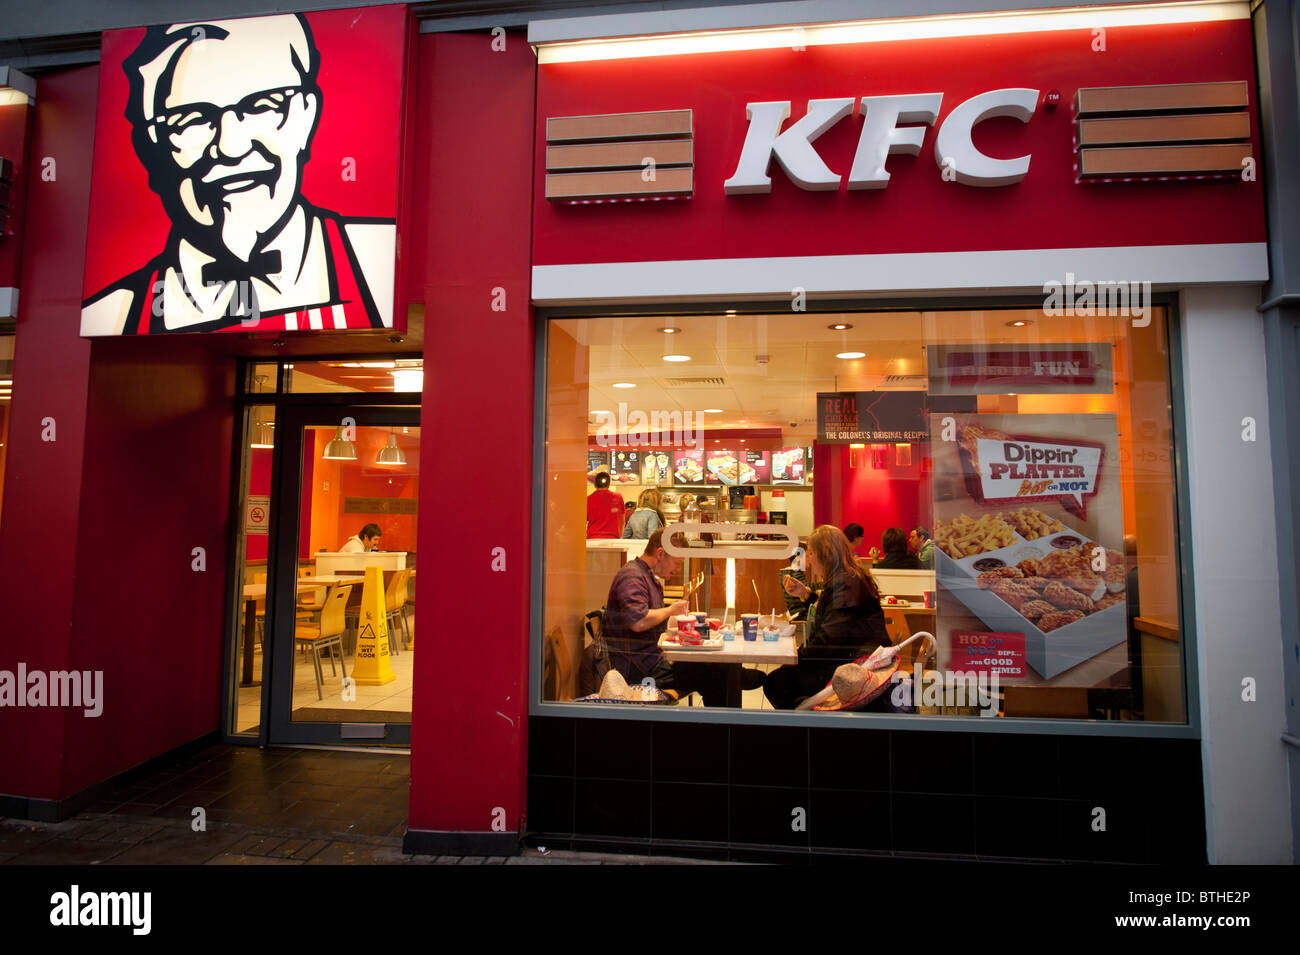 Exterior, night, people eating in a branch of KFC, kentucky fried chicken, fast food restaurant, UK Stock Photo